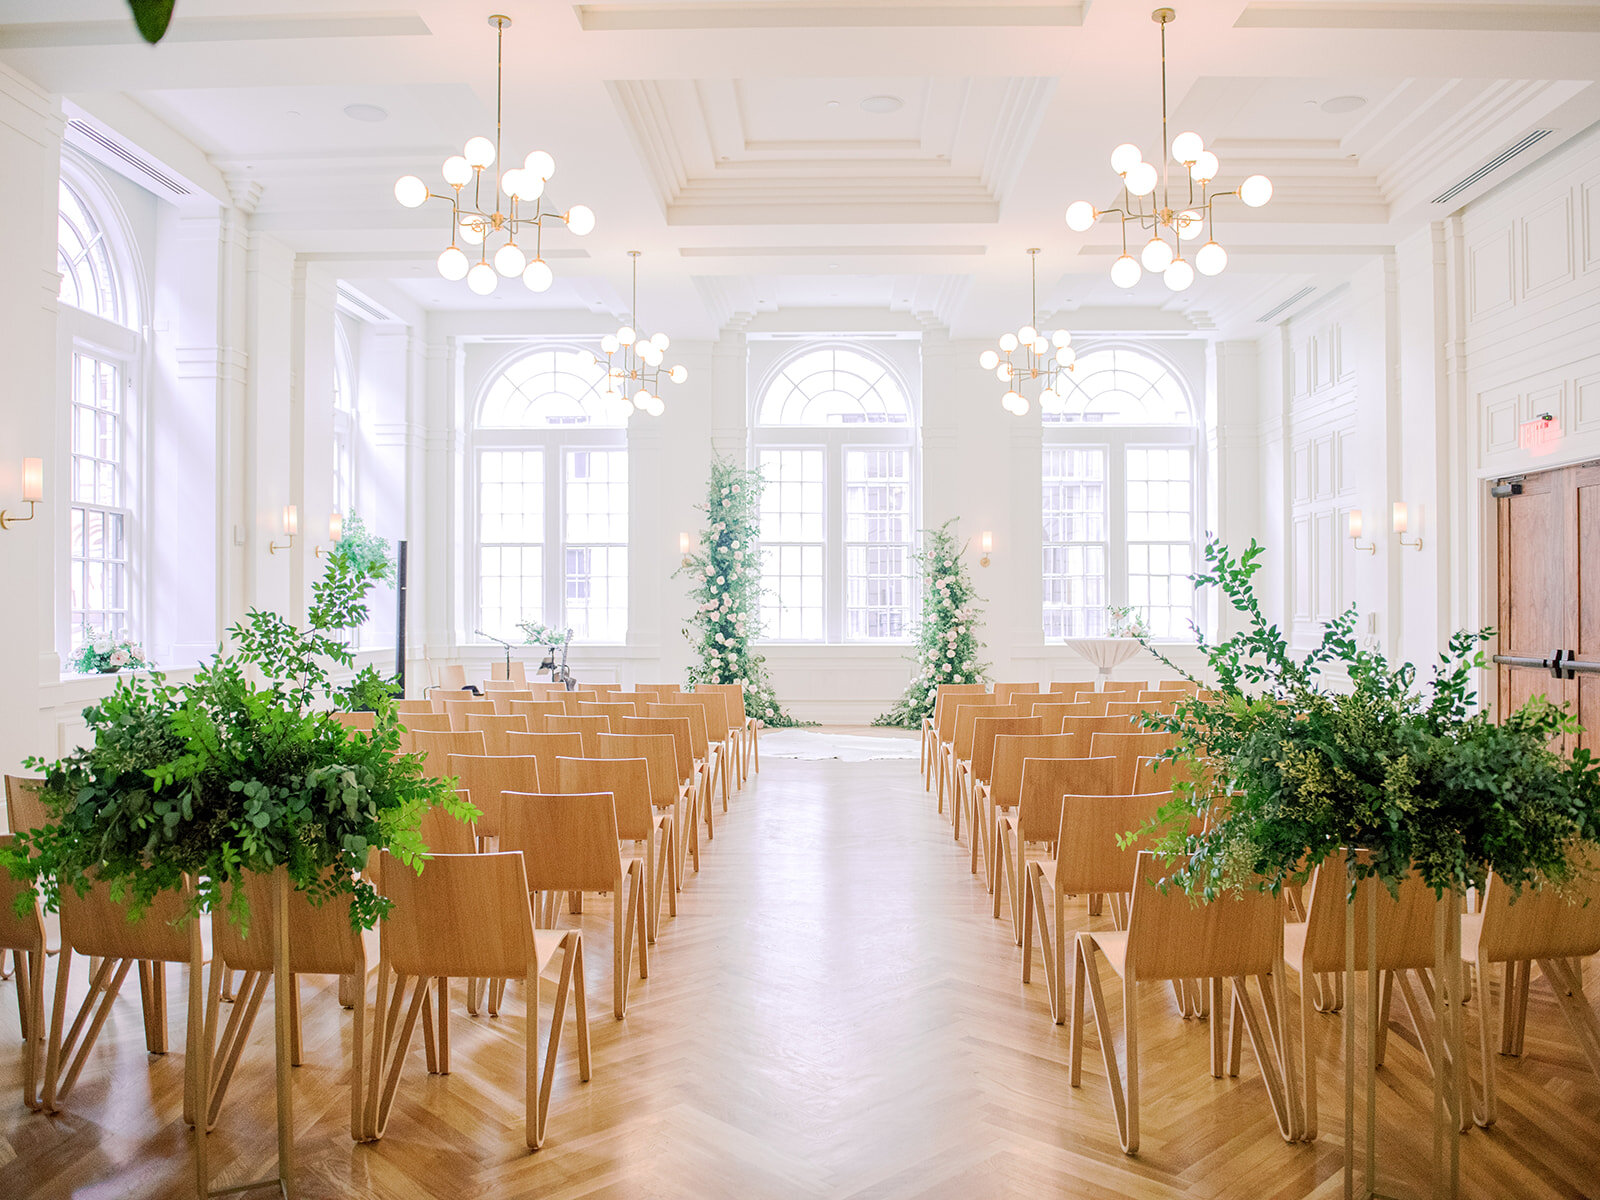 White wall venue with mid-century modern chandeliers and lush greenery floral installation for a Nashville wedding ceremony.